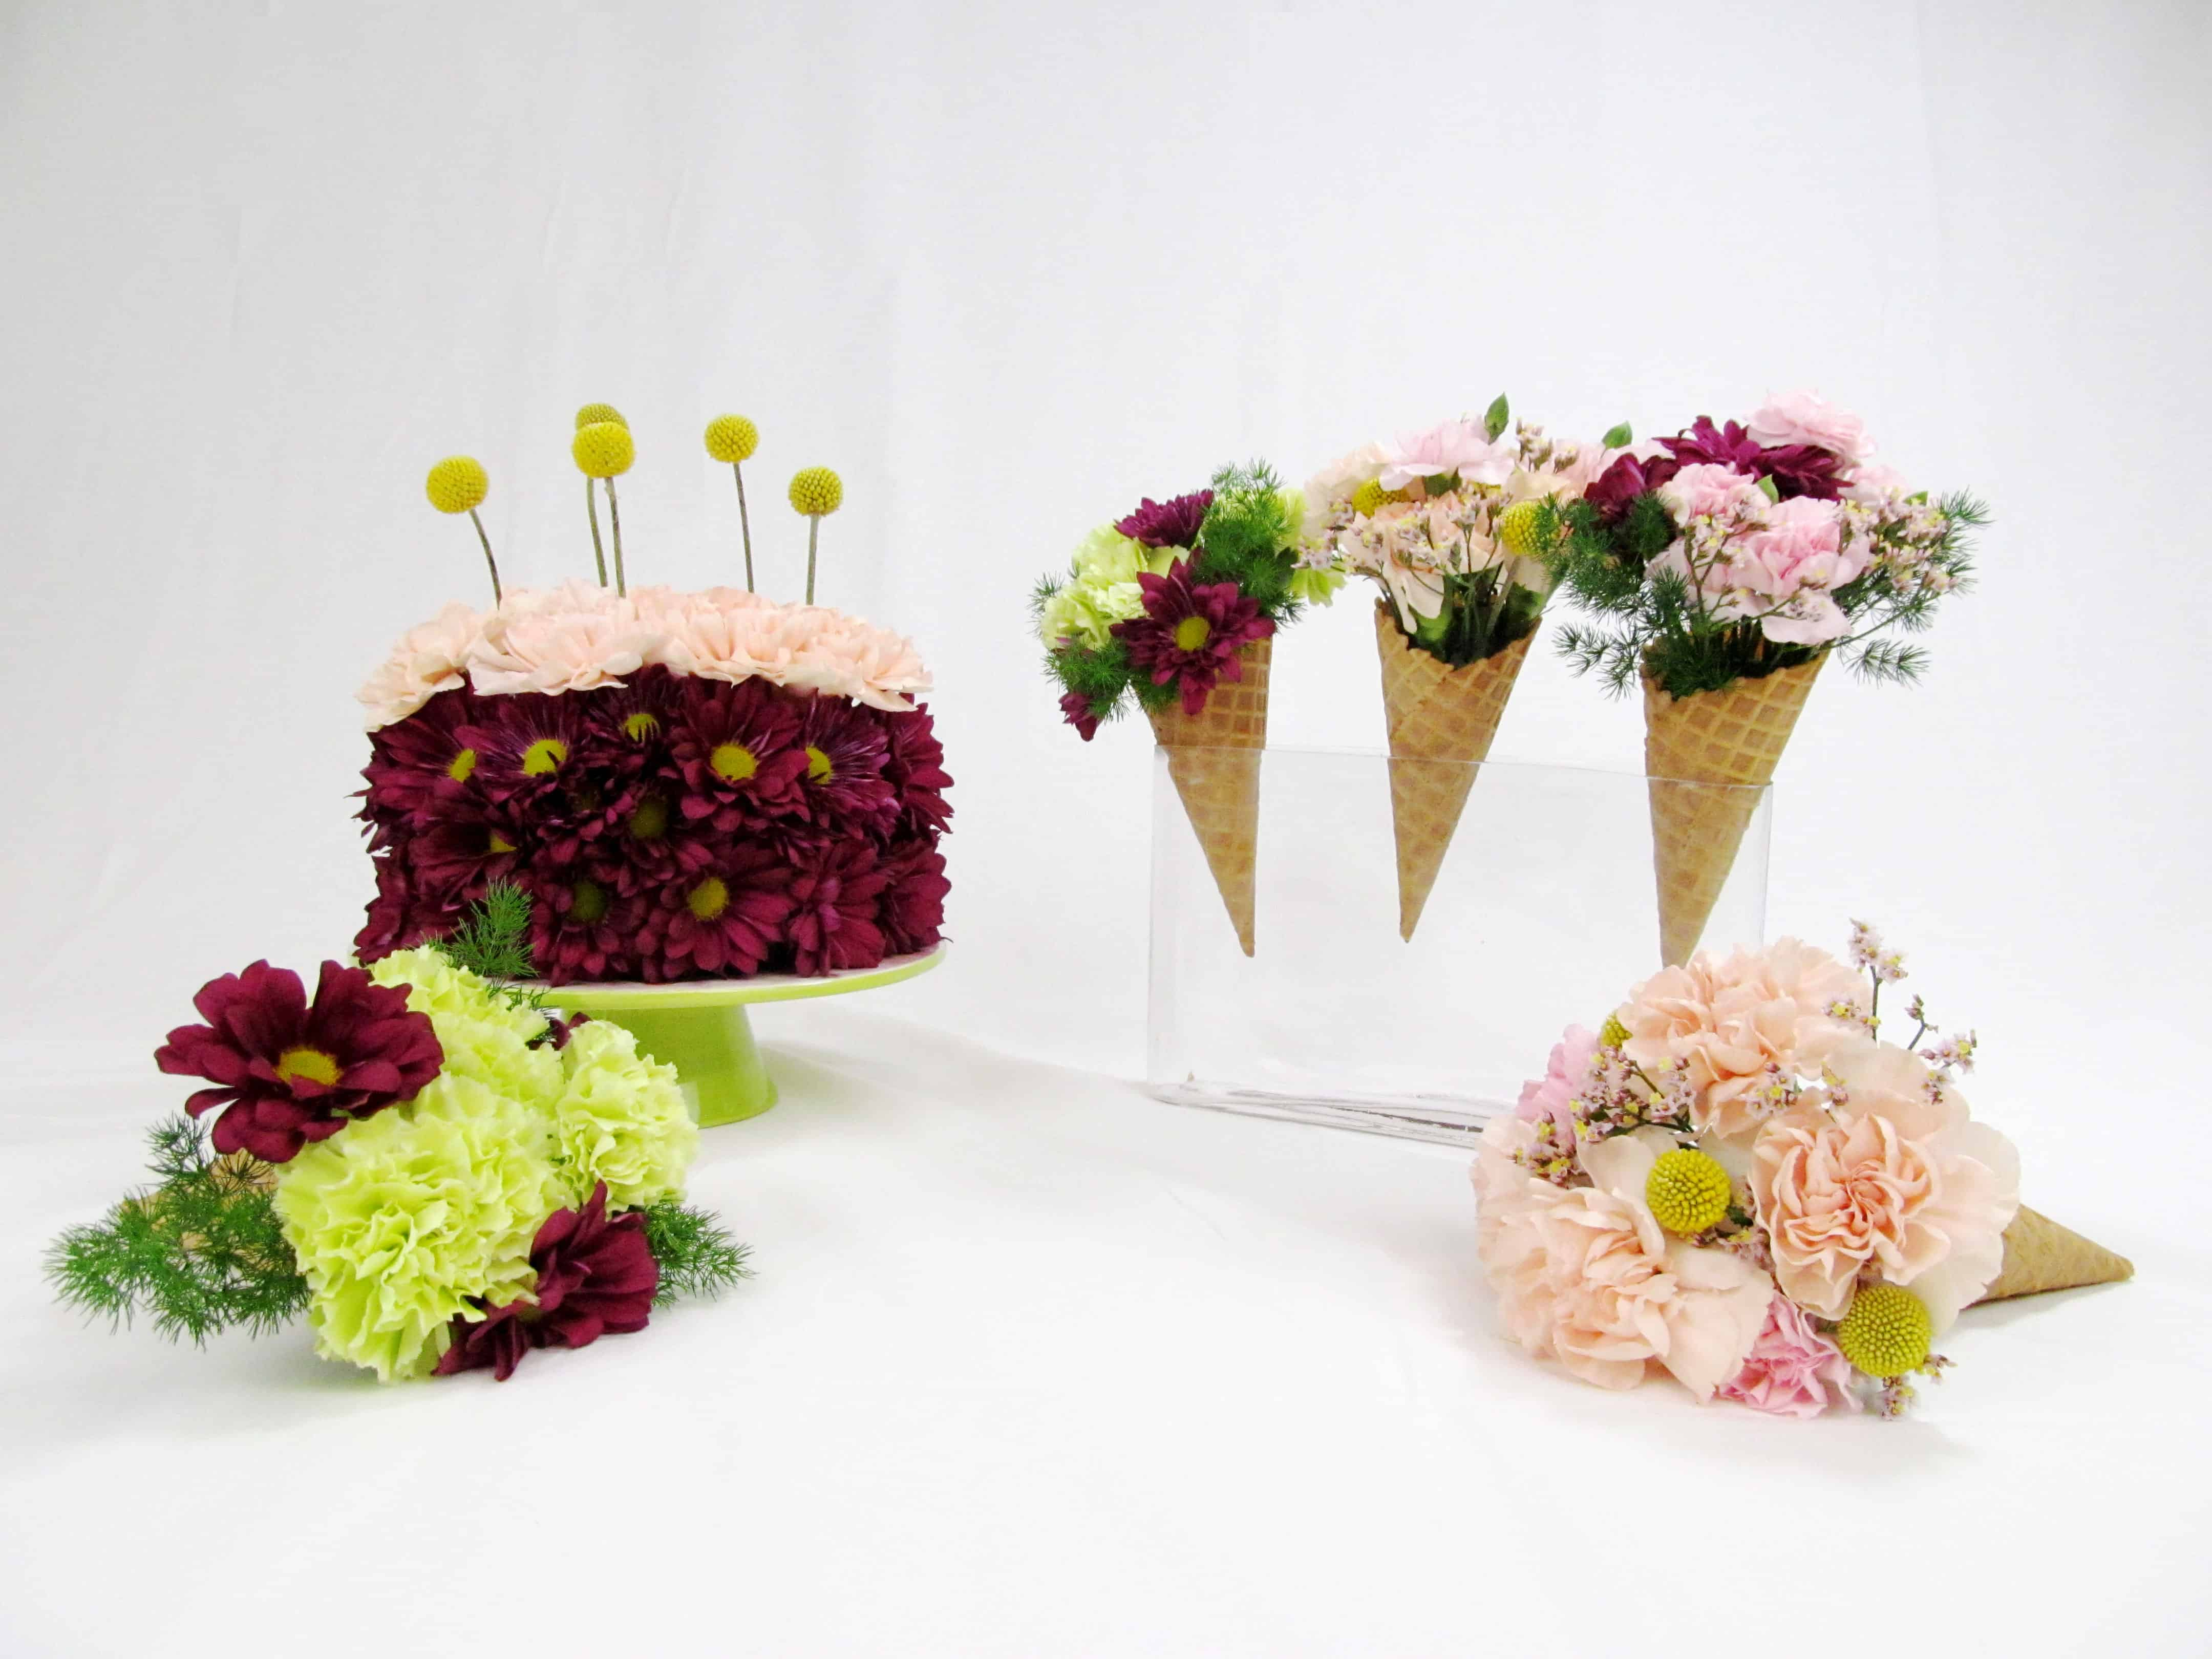 DIY Flower Cake and Ice Cream Cones - Budget Friendly Beauty